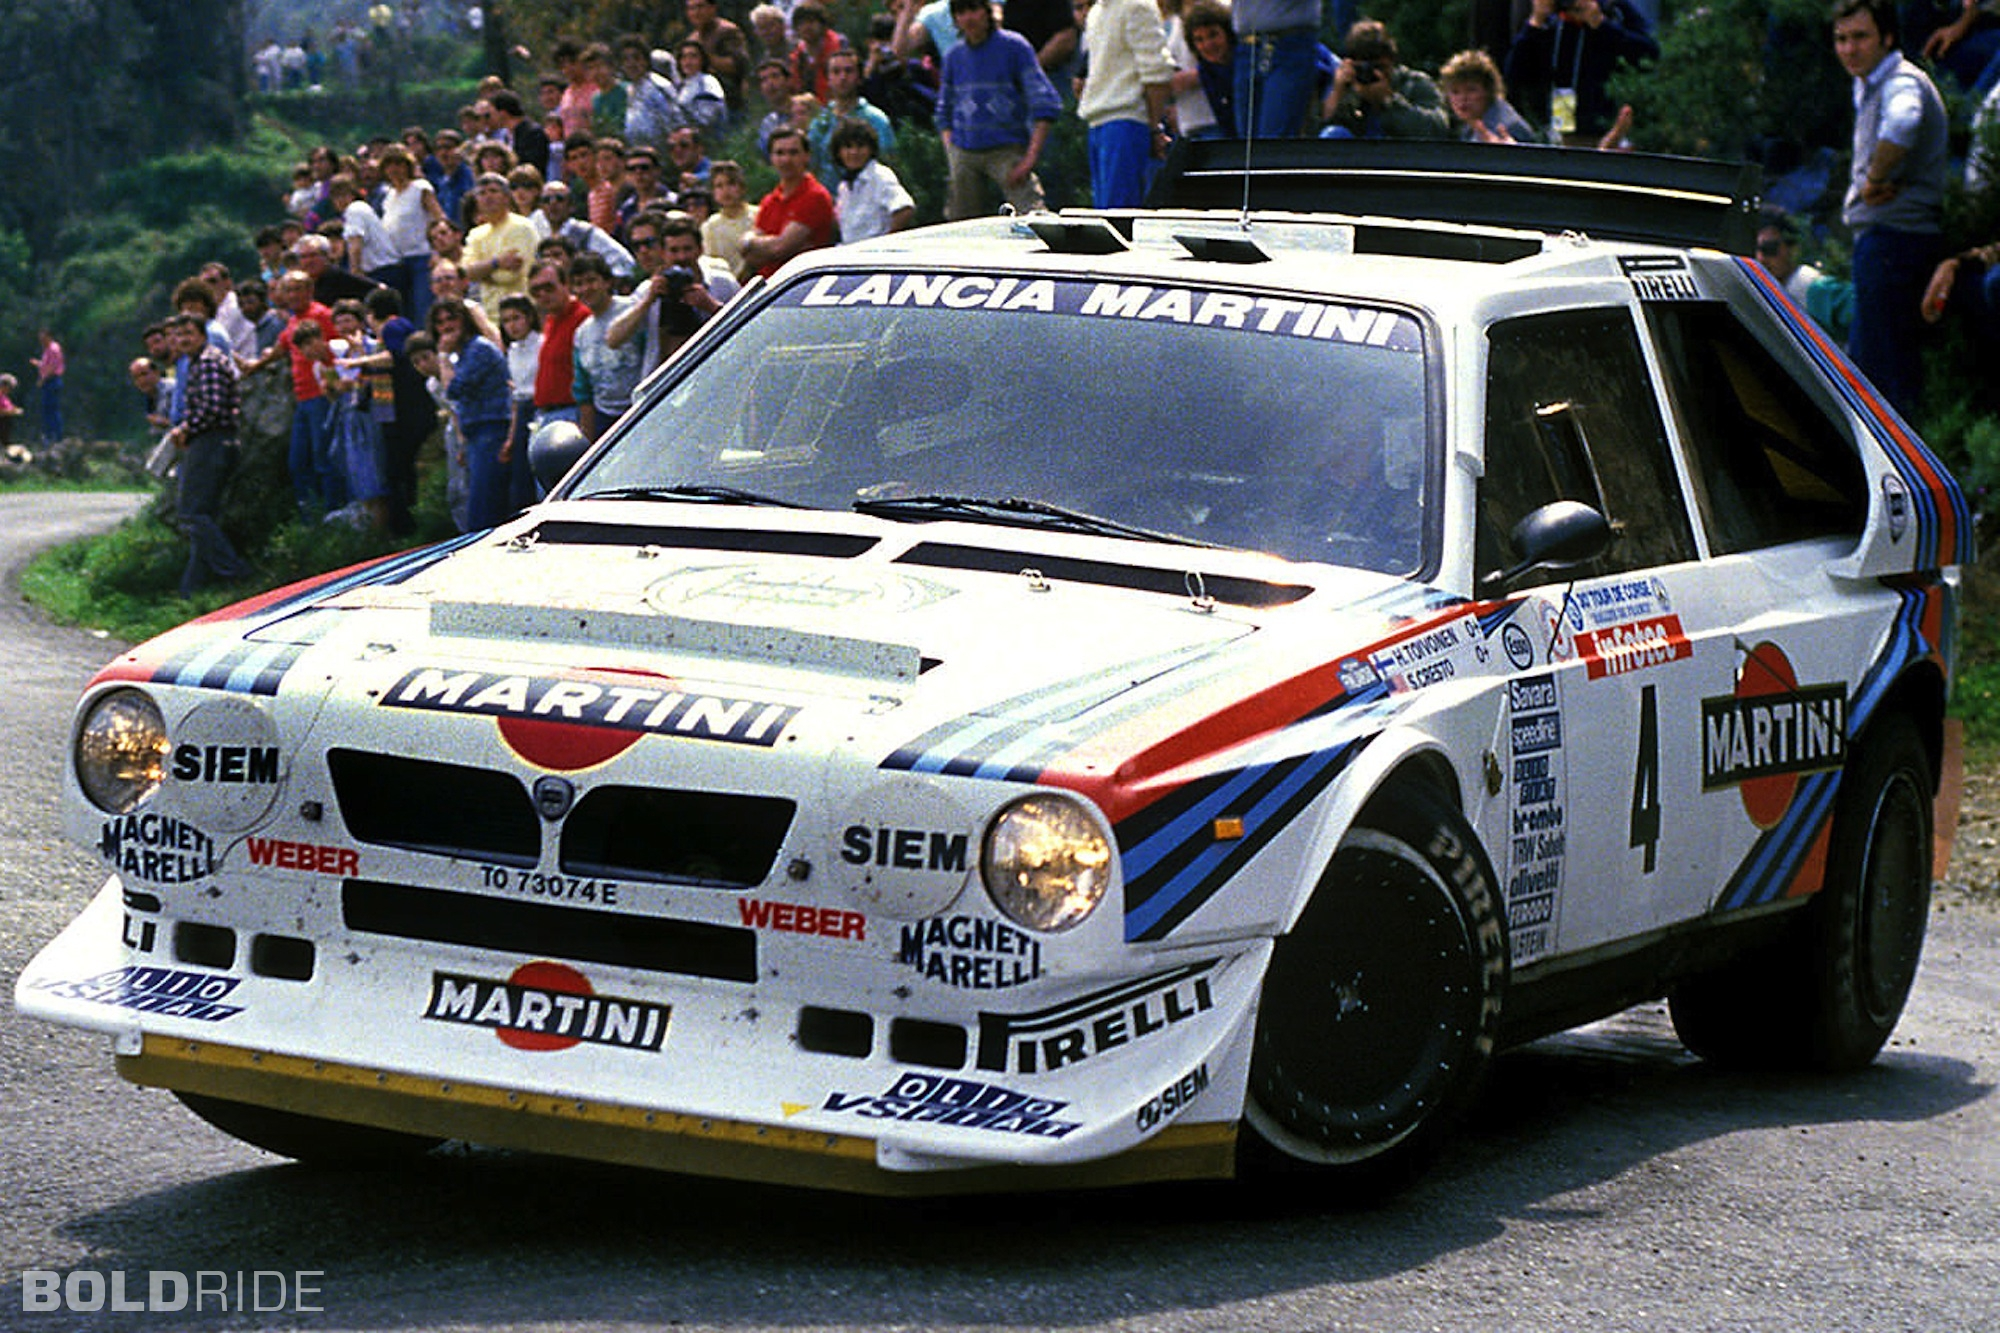 The Delta S4 was brutally fast and hard to control at the ragged edge, a point underlined by the tragic events at the 1986 Tour de Corse